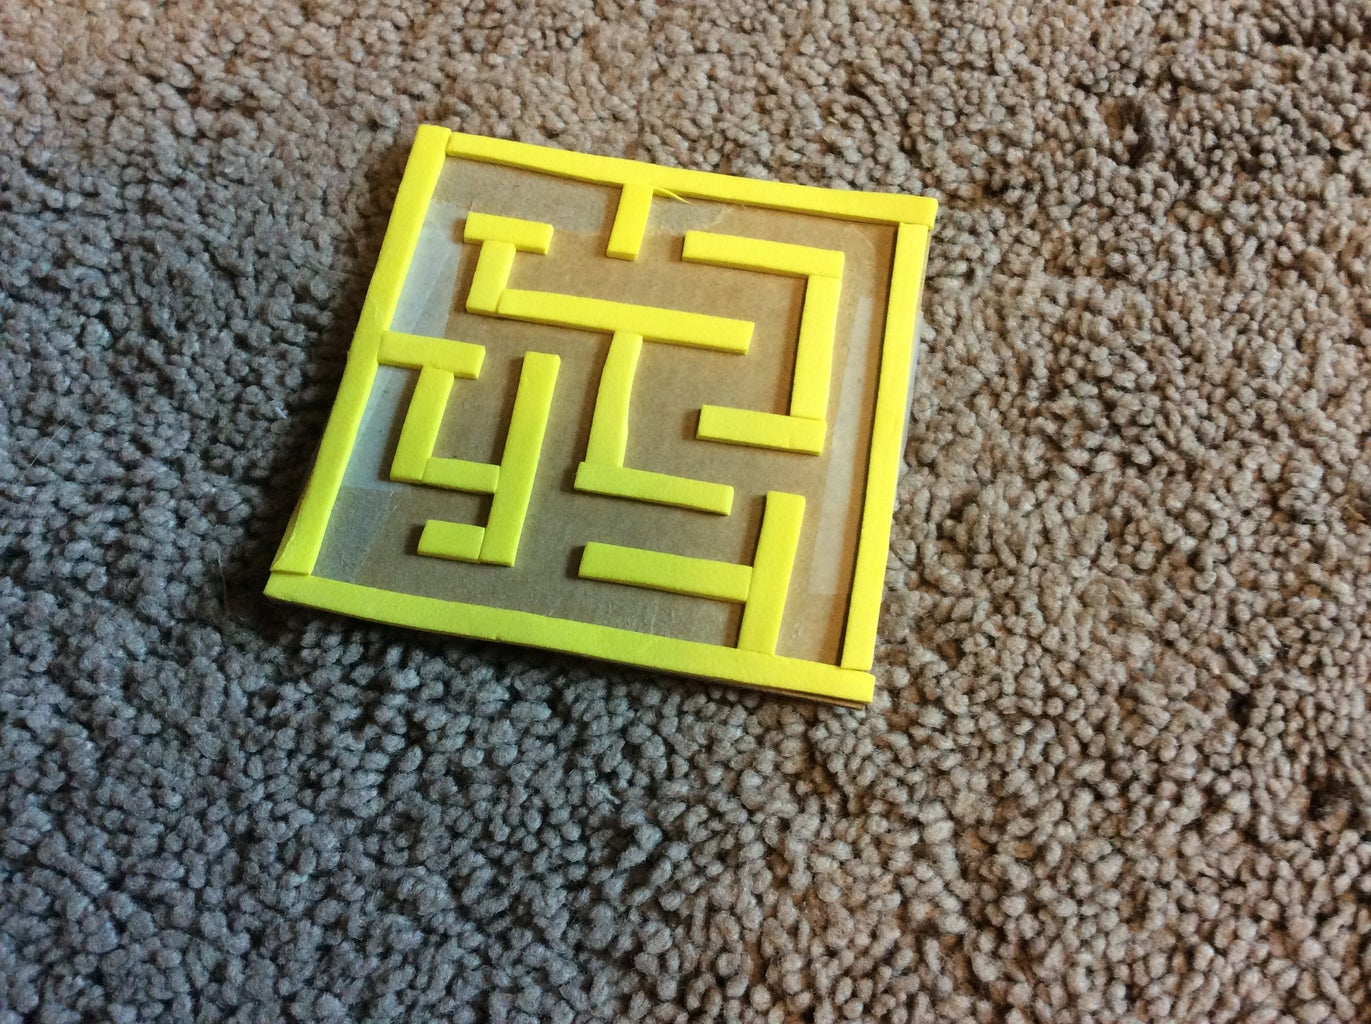 The Maze and Final Adjustments